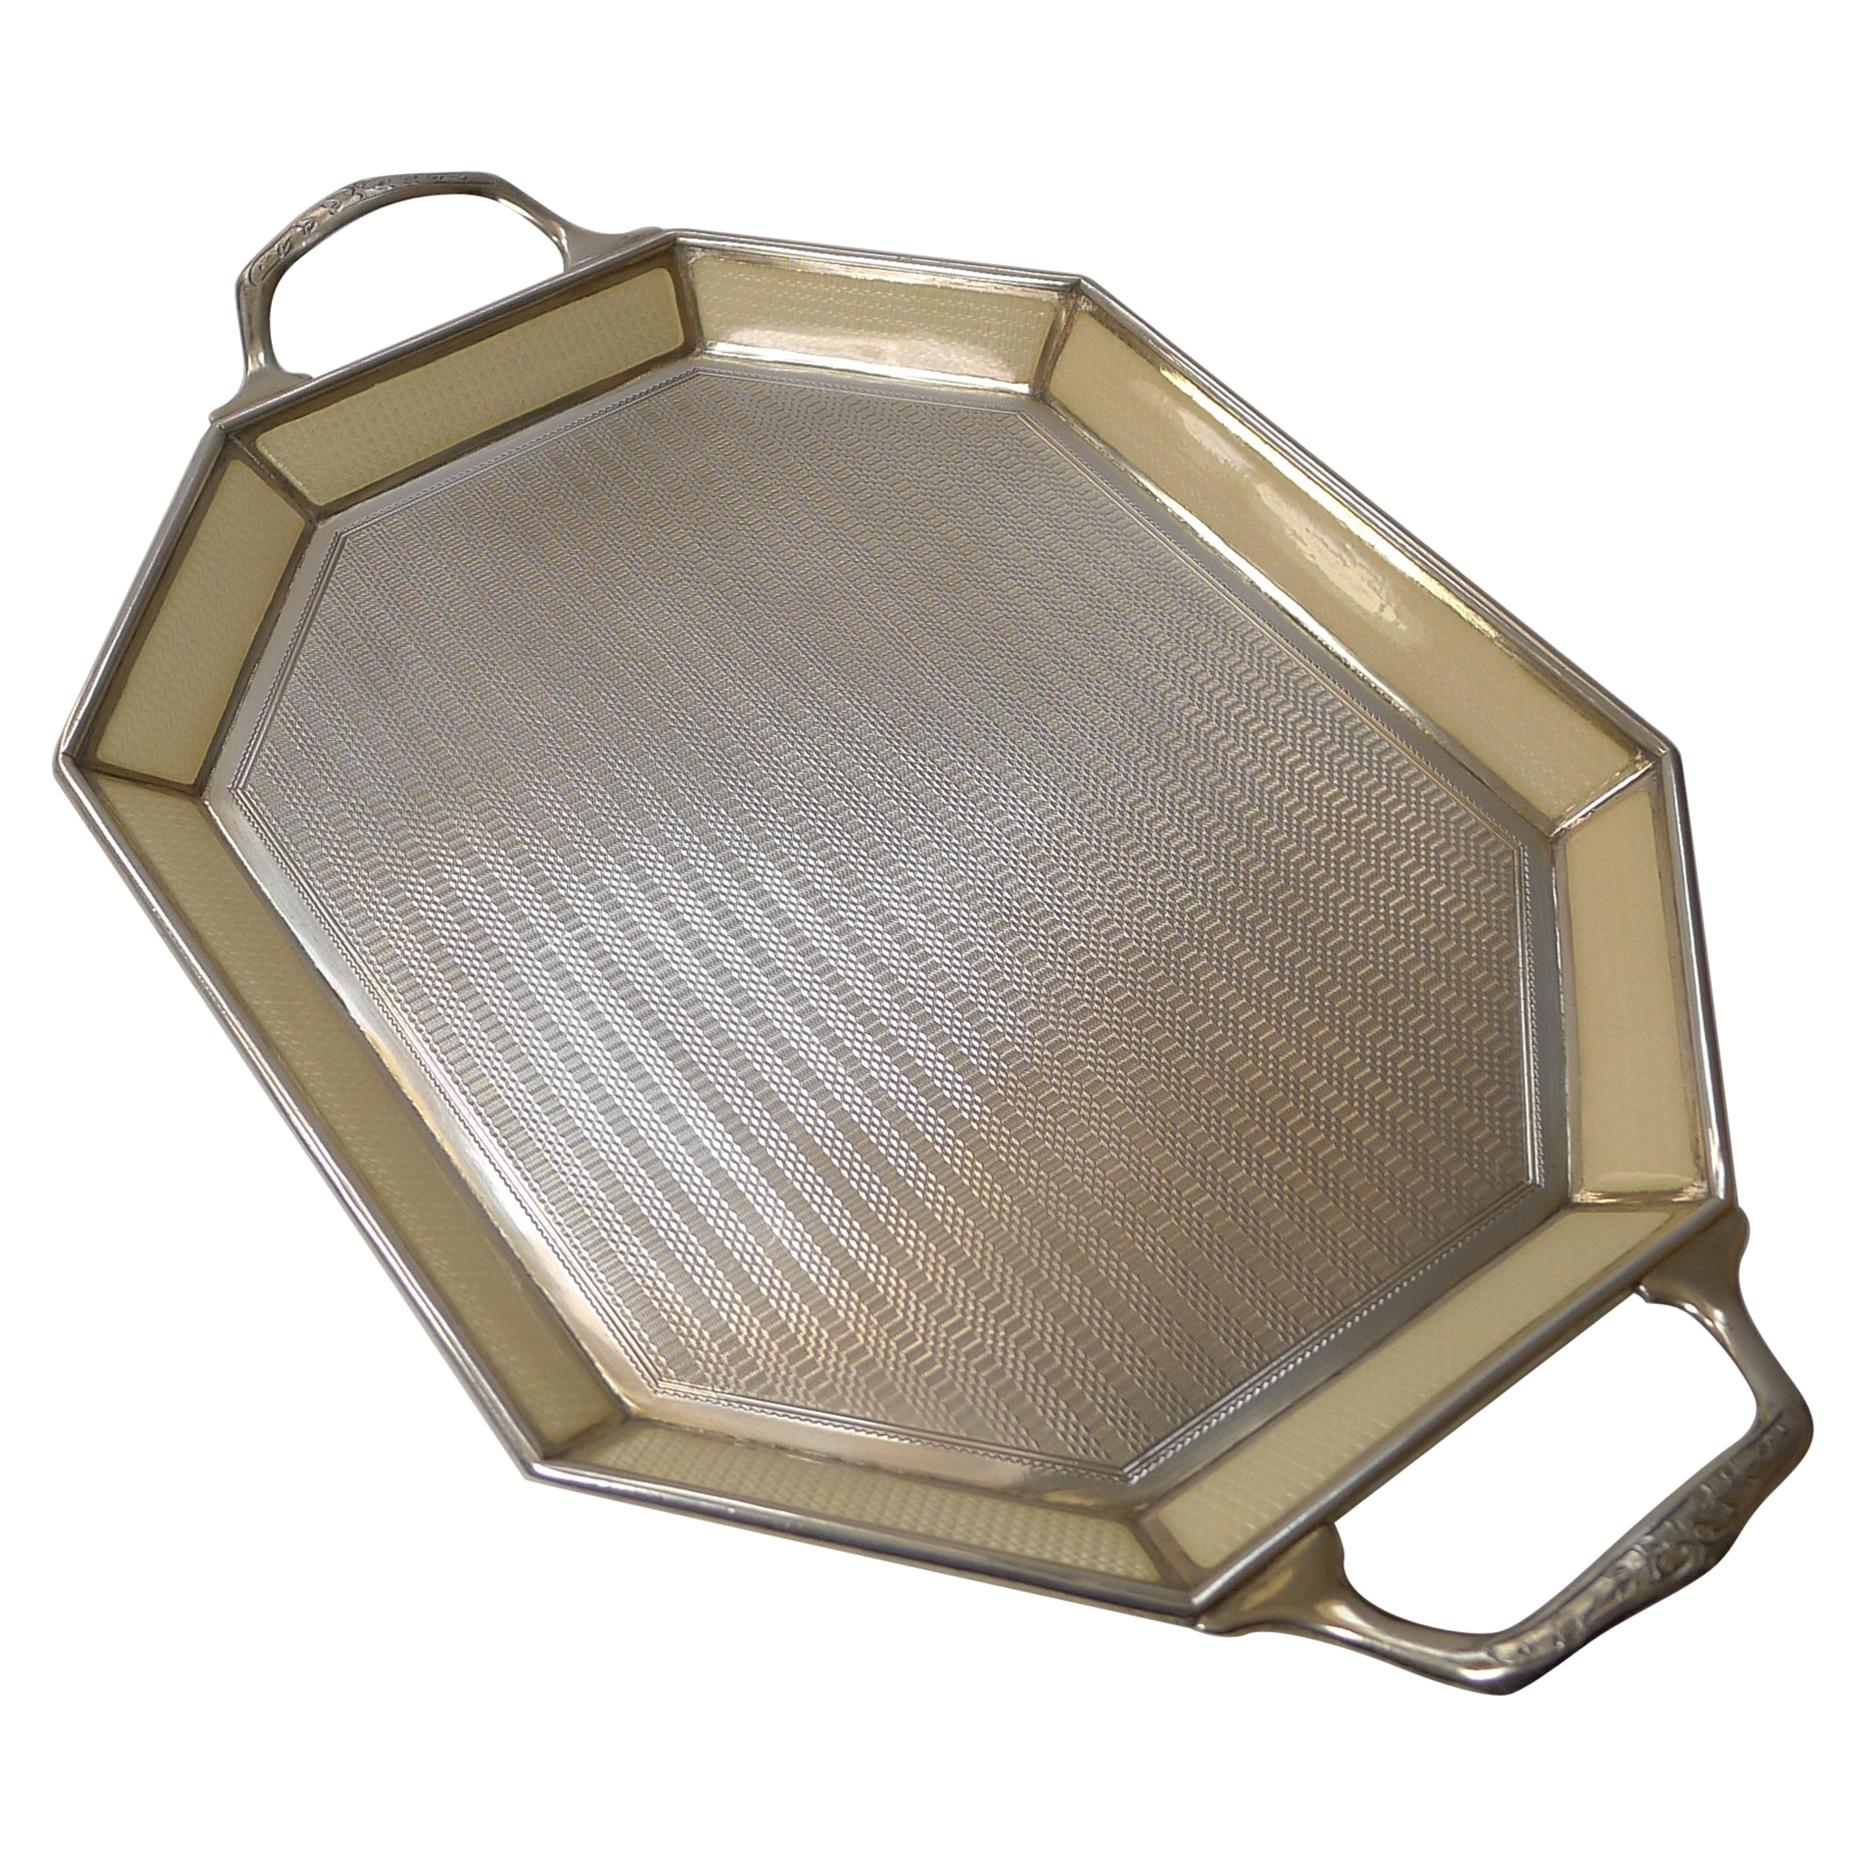 Small Antique Belgian Sterling Silver and Guilloche Enamel Tray, c.1920